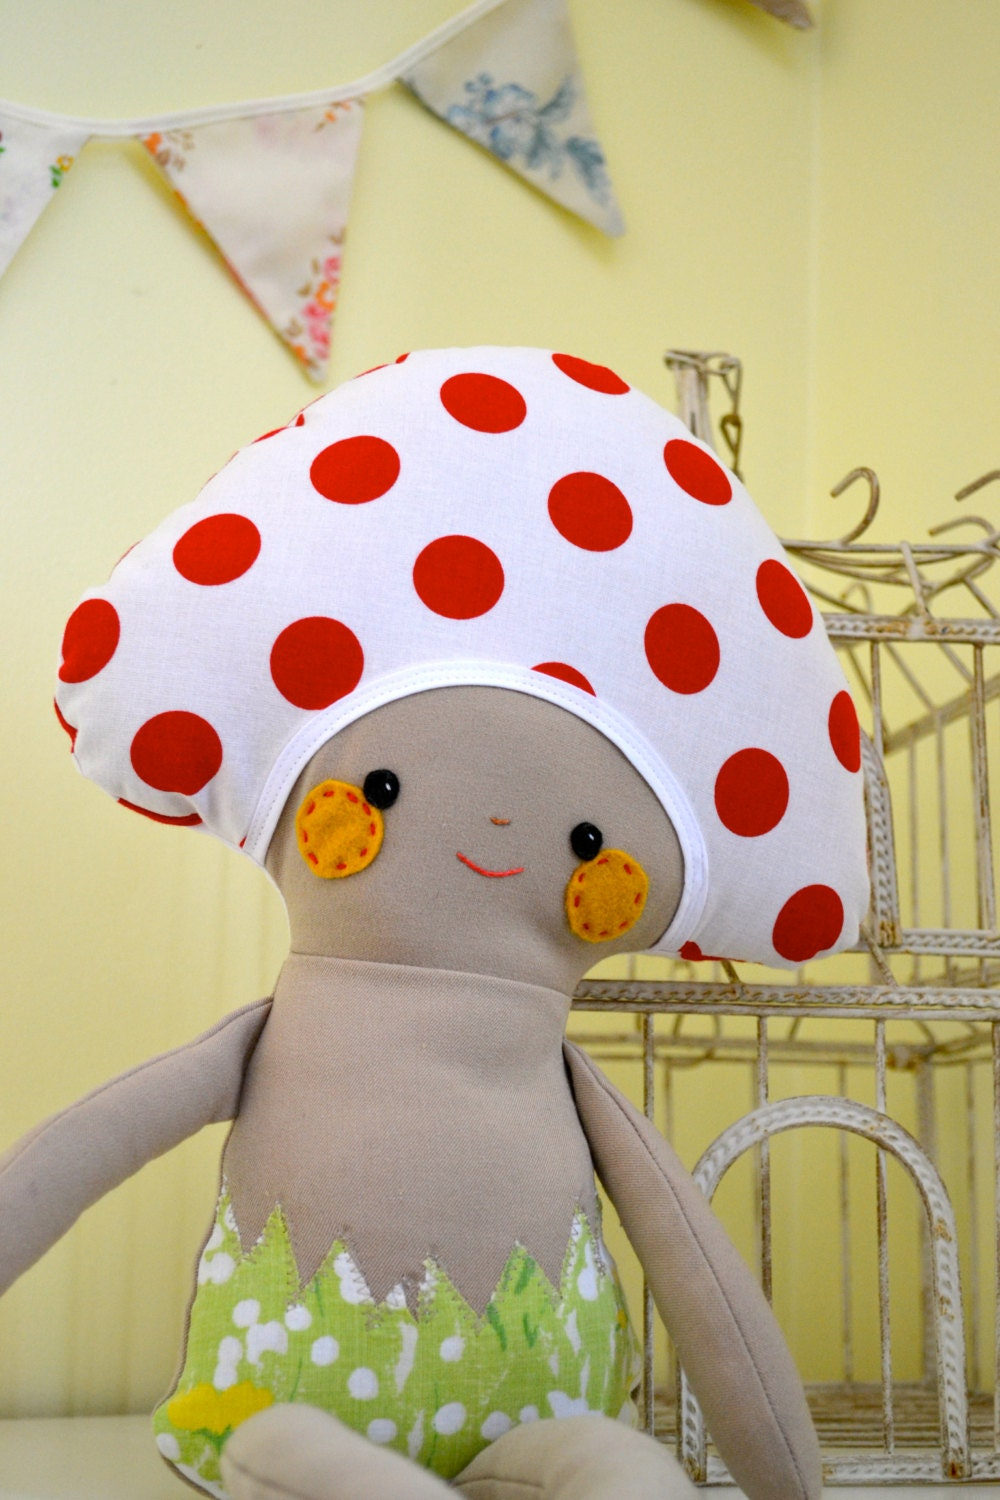 https://www.etsy.com/listing/124953103/customized-mushroom-baby-alice-softie?ref=shop_home_active_2